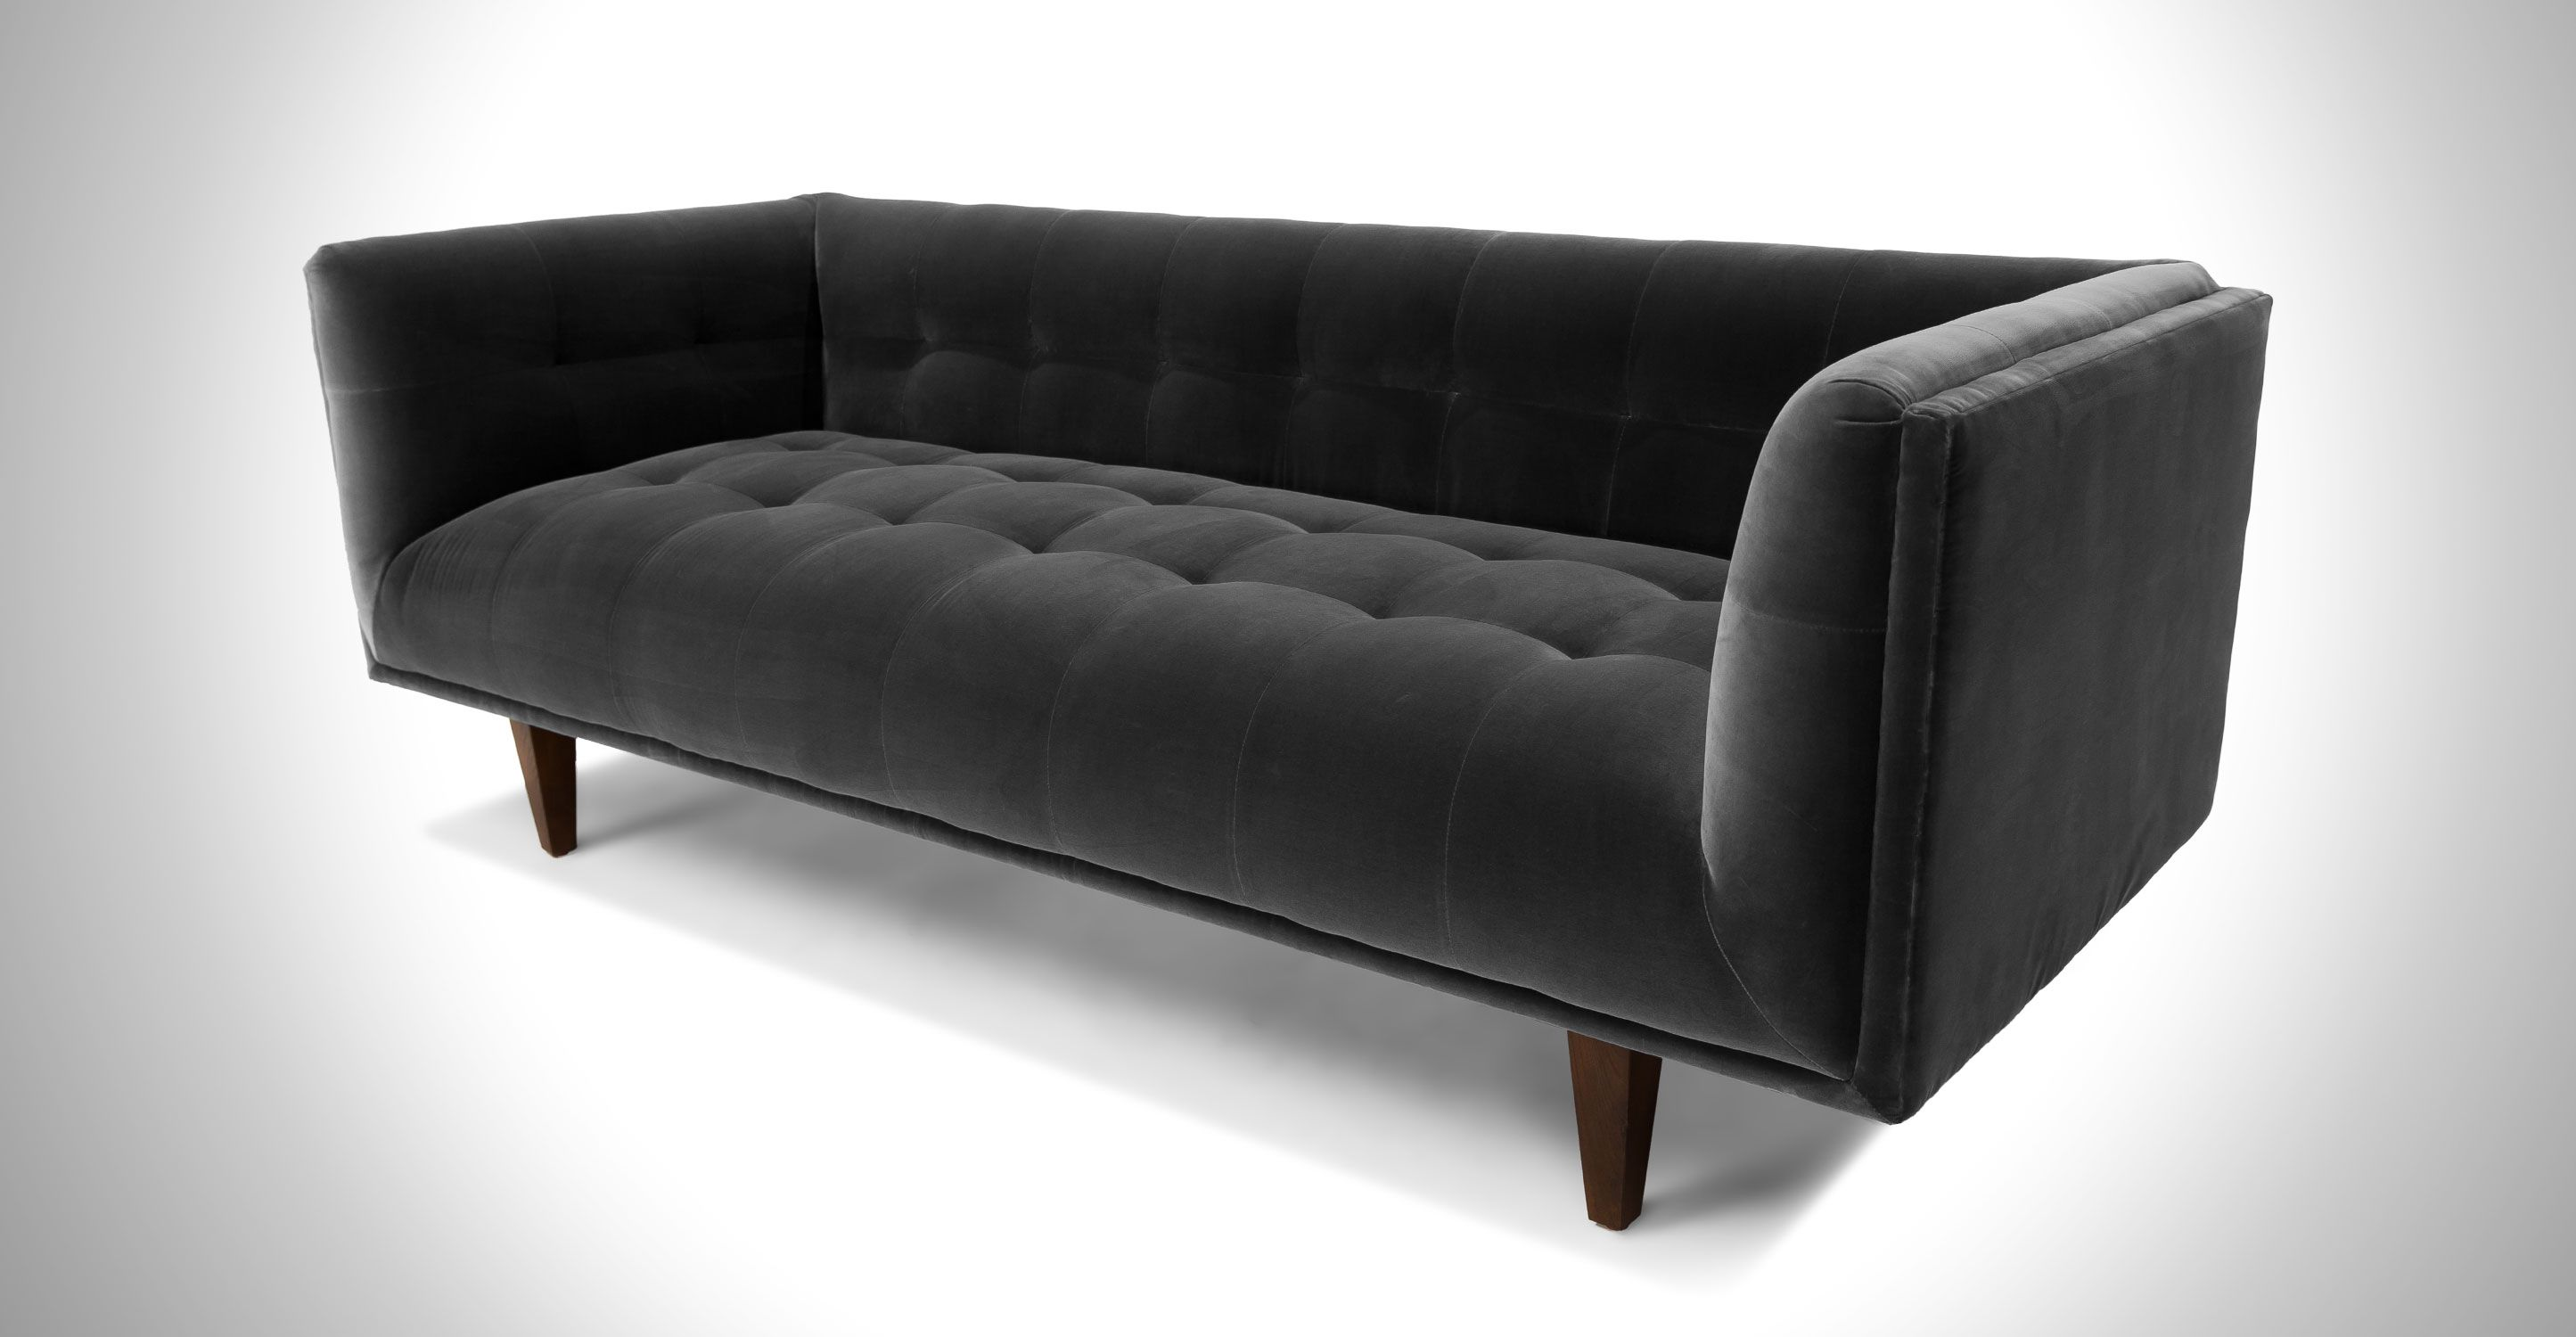 Dark Gray Velvet Sofa Tufted Wooden Legs